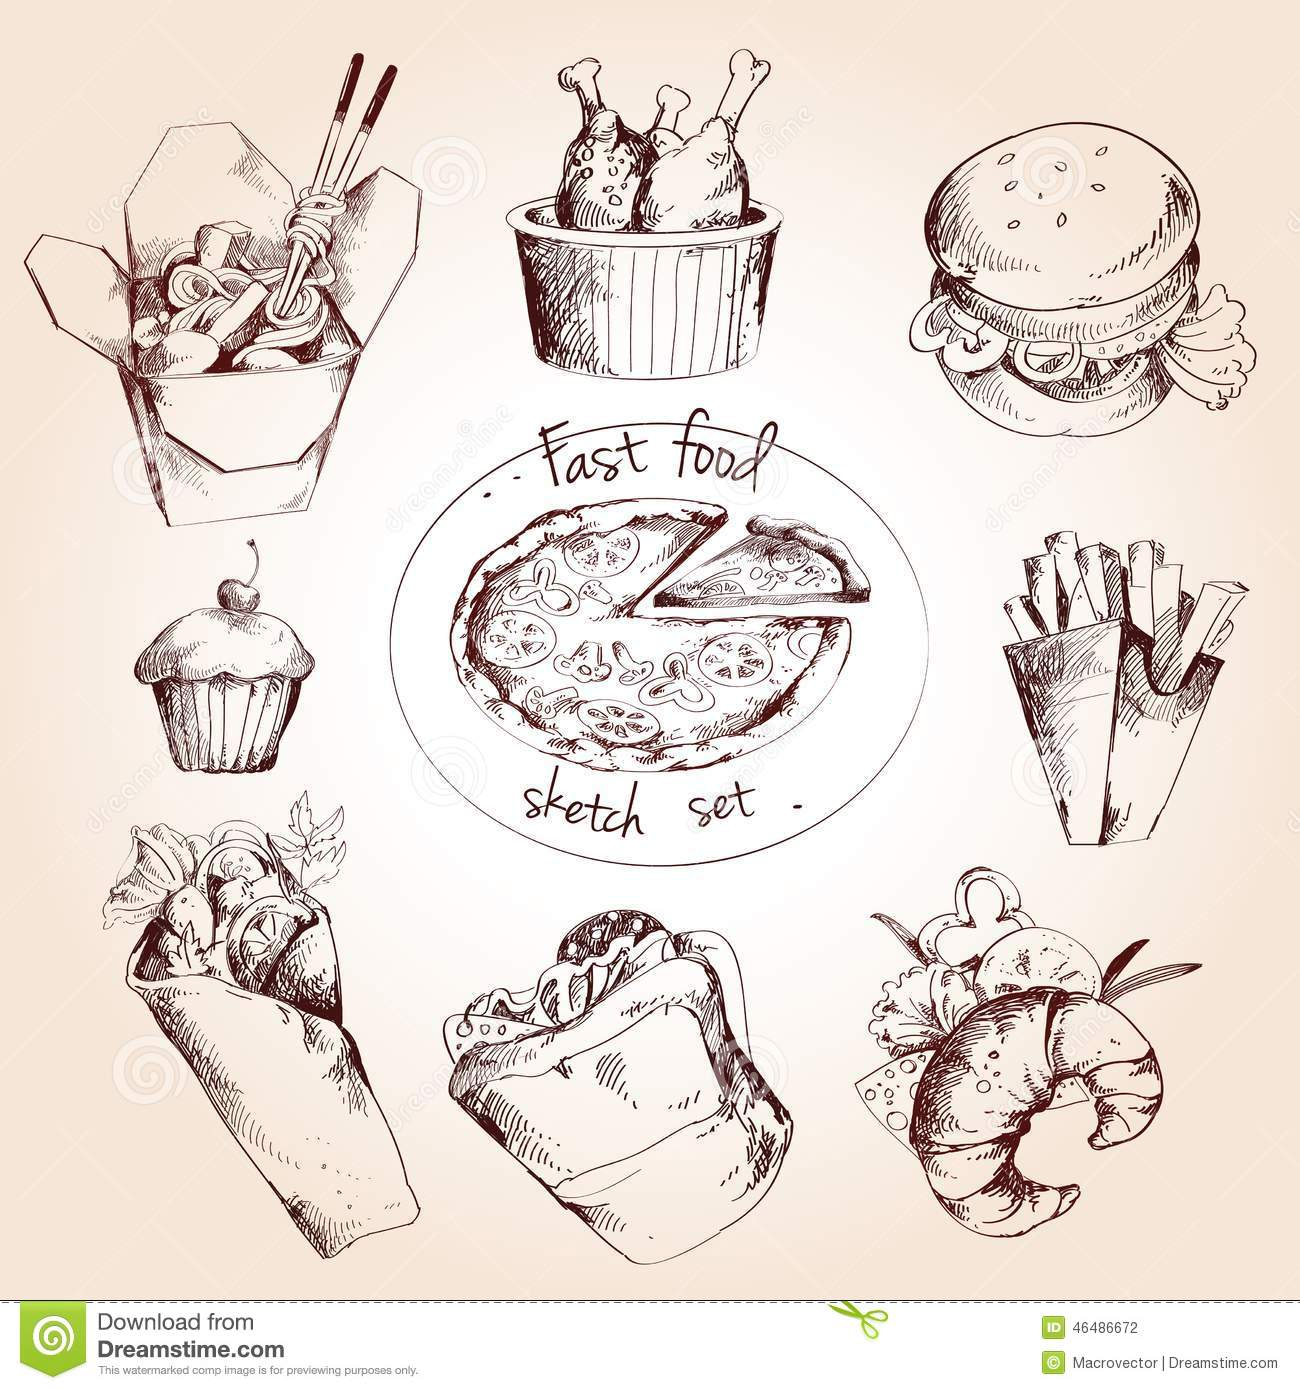 Fast Food Sketch Set Stock Vector. Illustration Of Icecream - 46486672